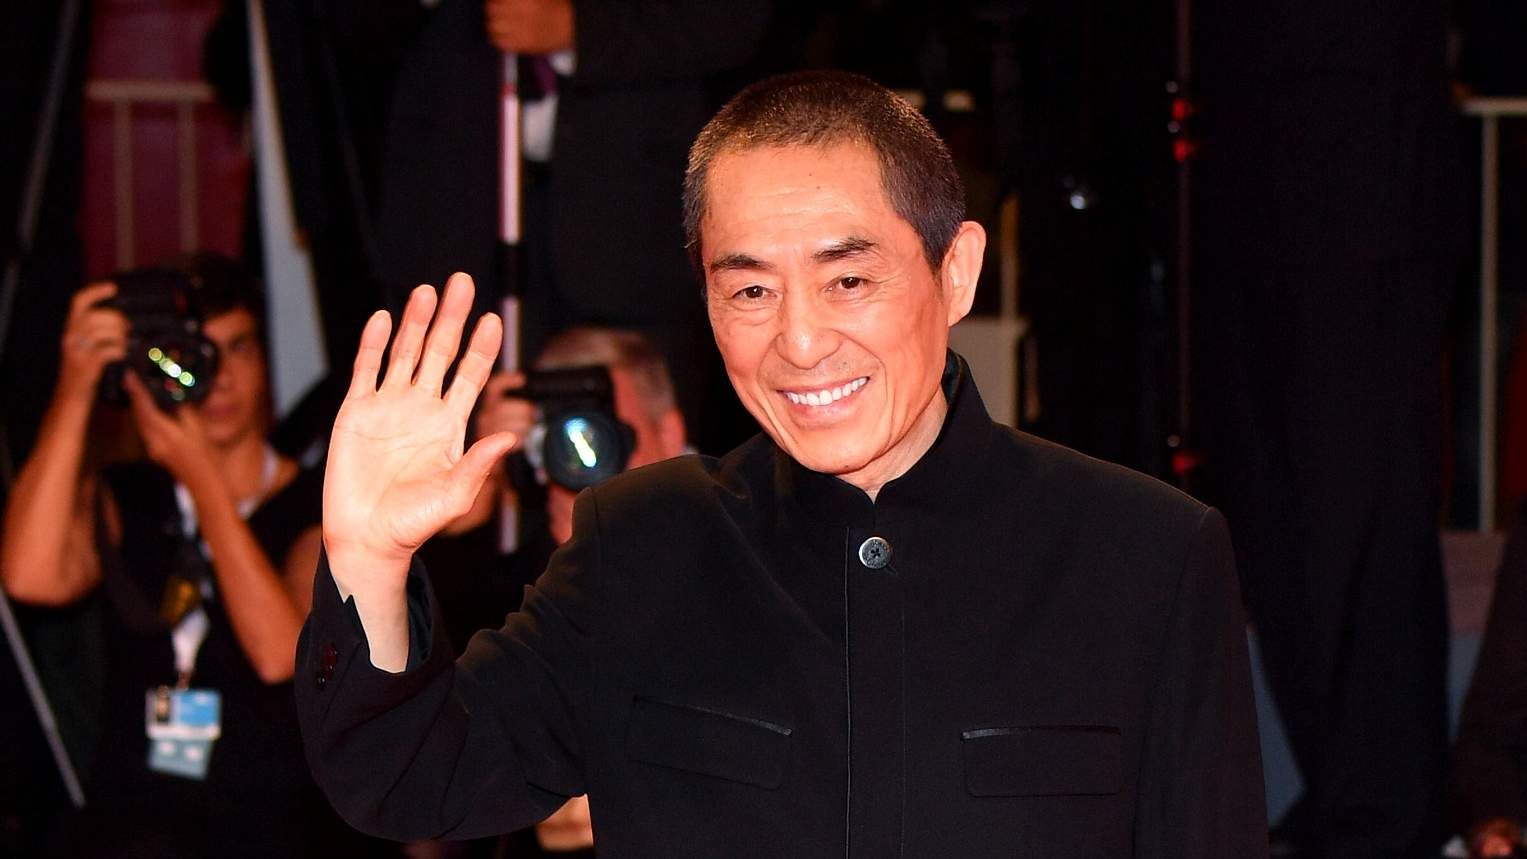 Zhang Yimou makes return to Venice Film Festival after two decades